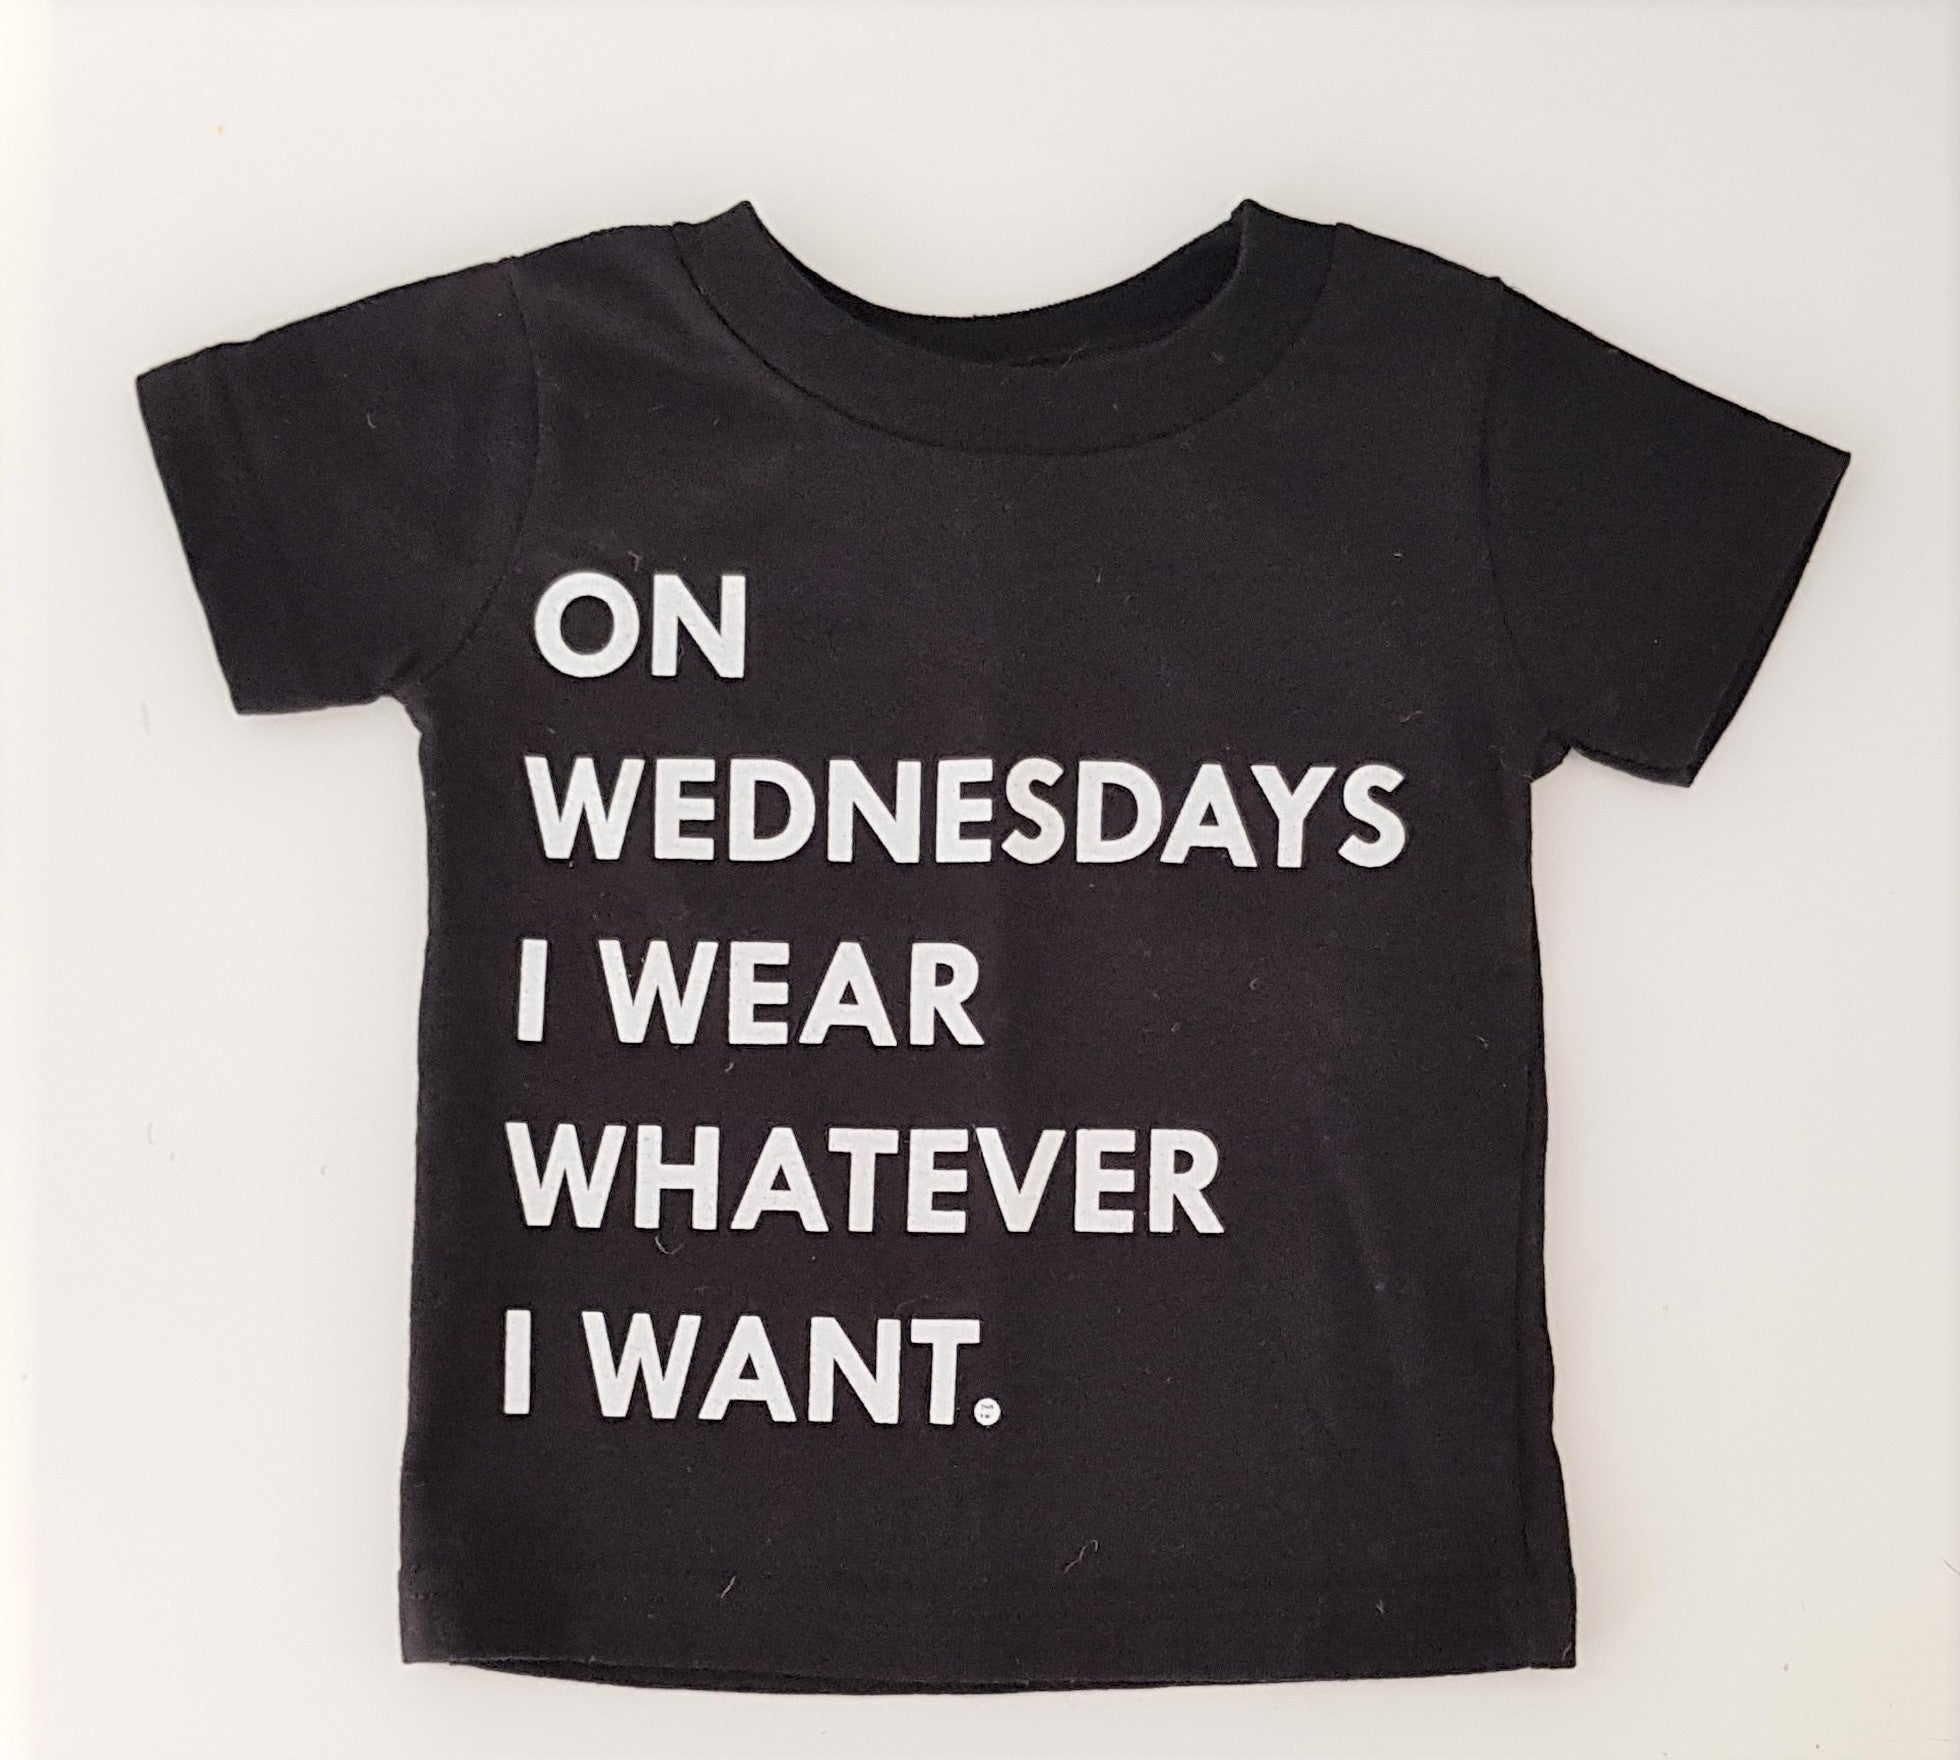 This Kid Clothing Co - On Wednesdays Tee - Black Size 6 Months